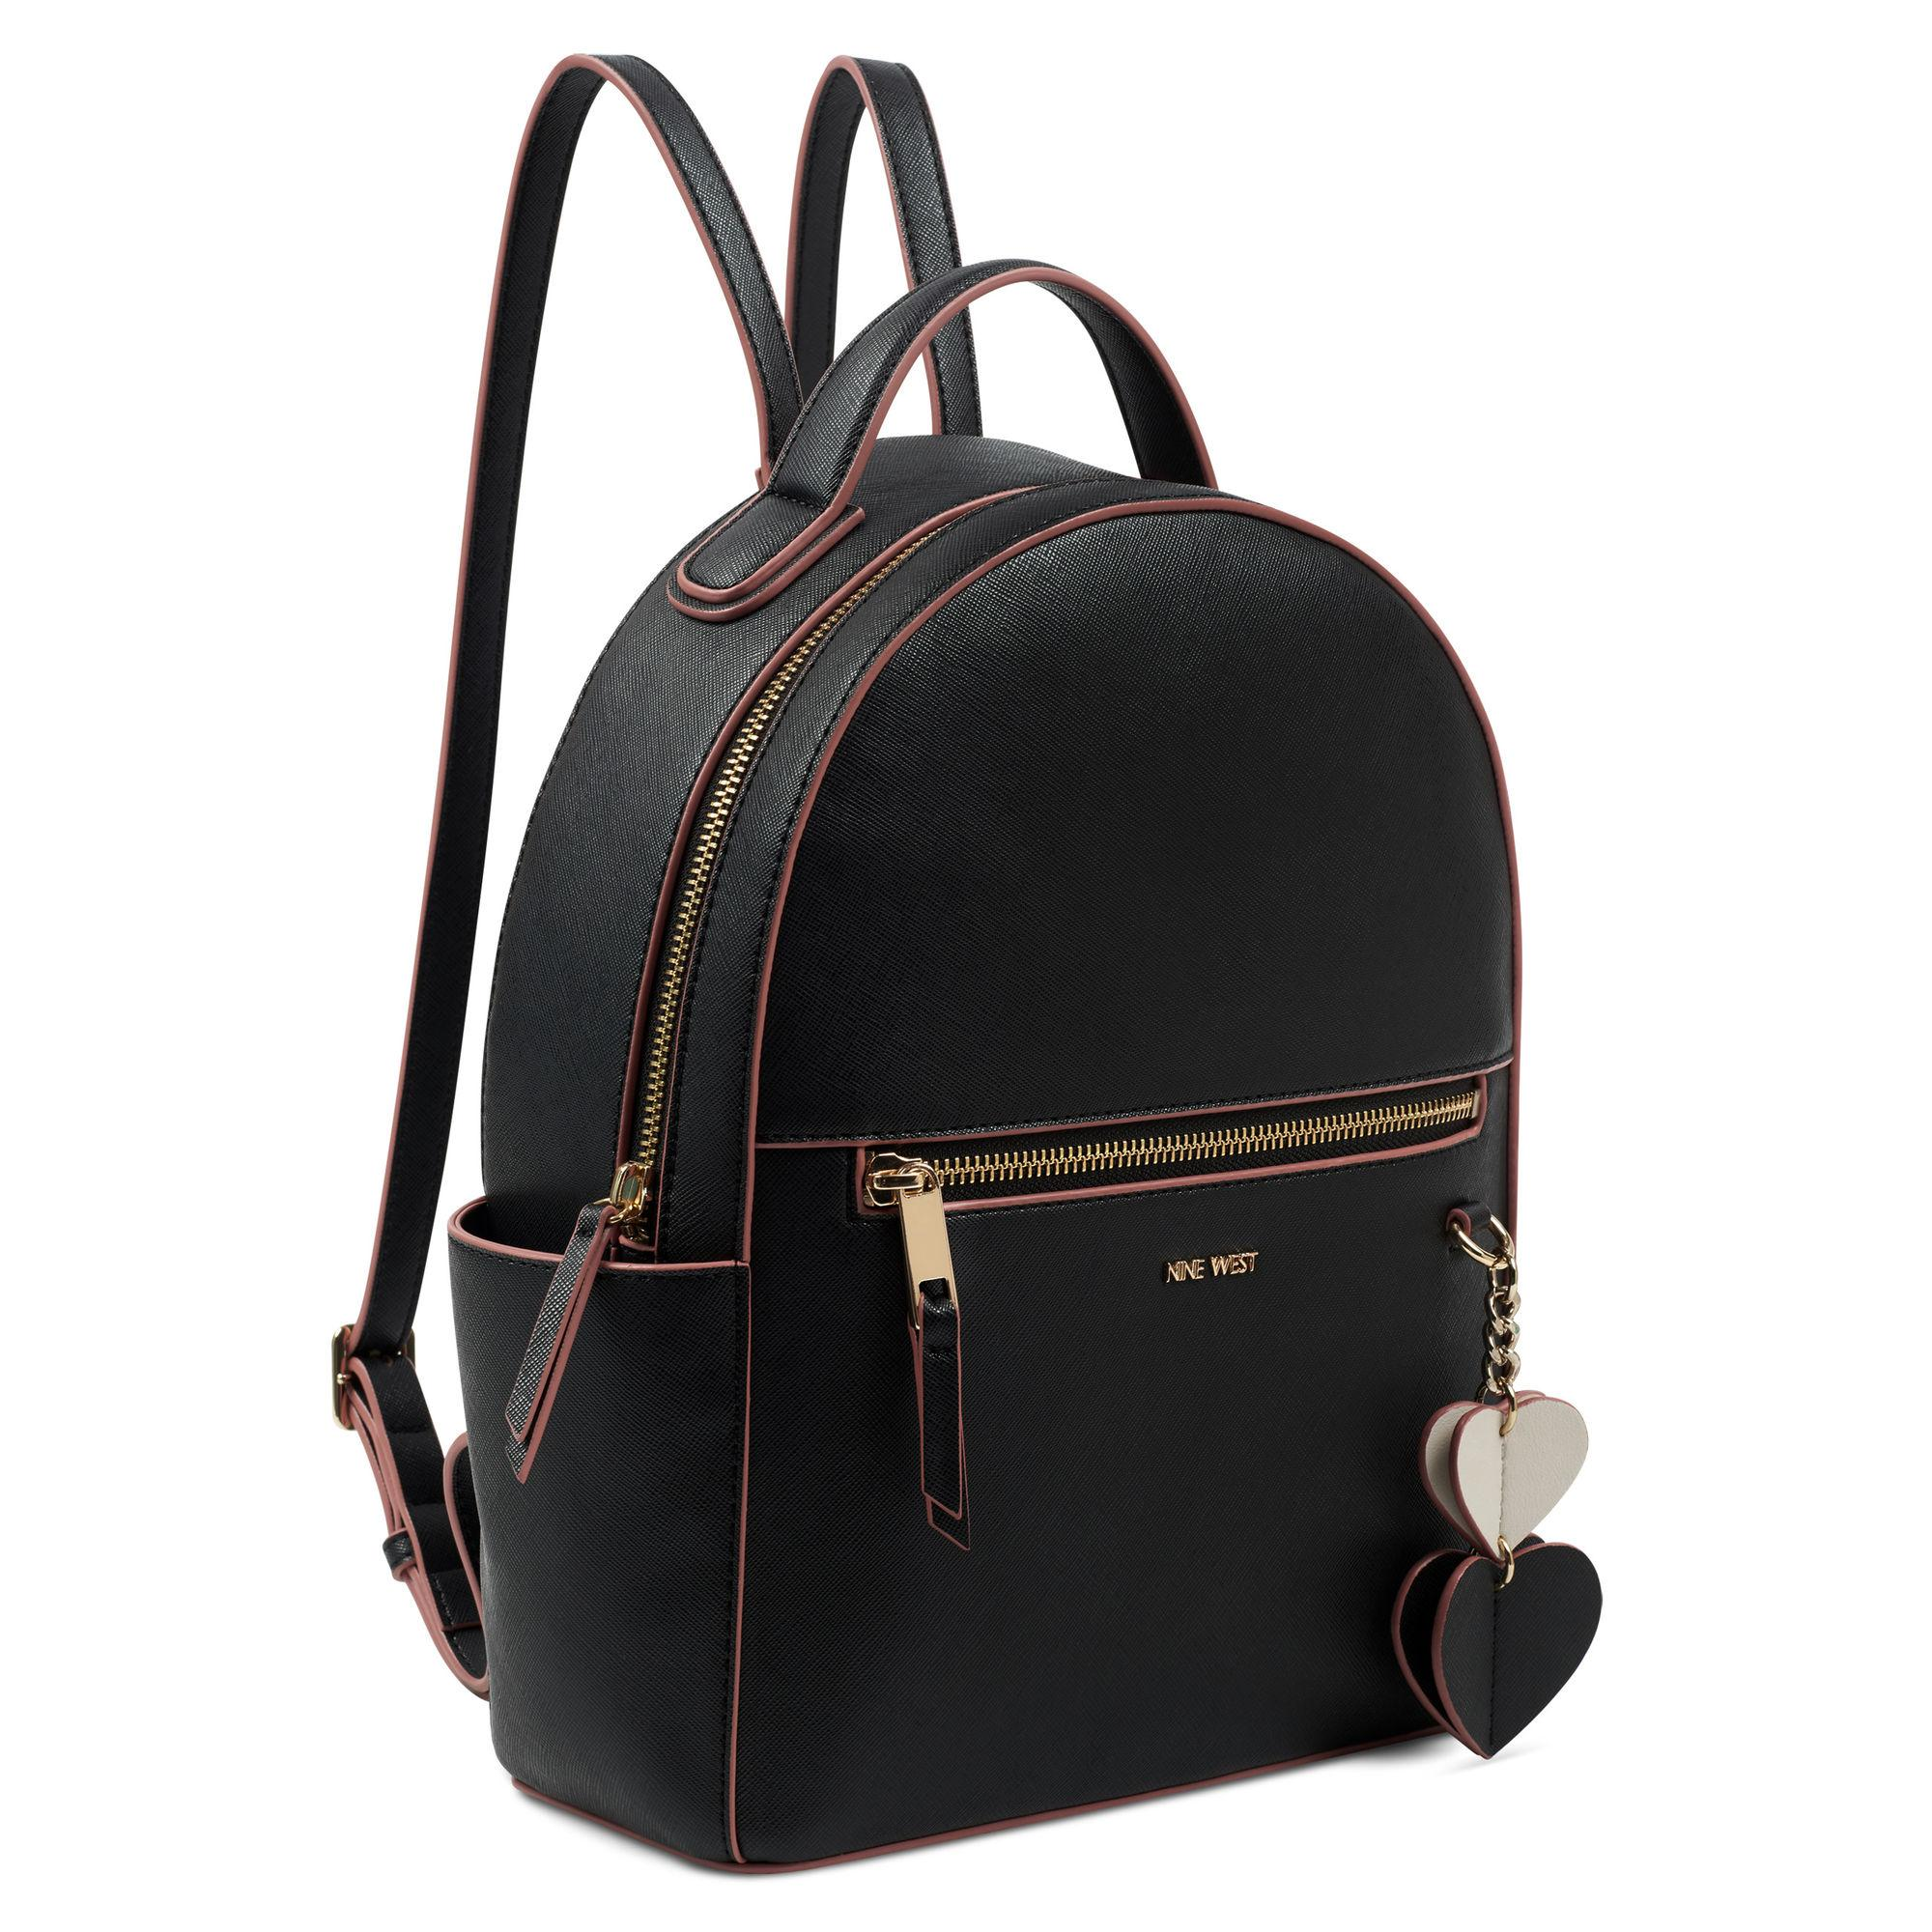 6a0d688ff8 Lyst - Nine West Briar Backpack in Black